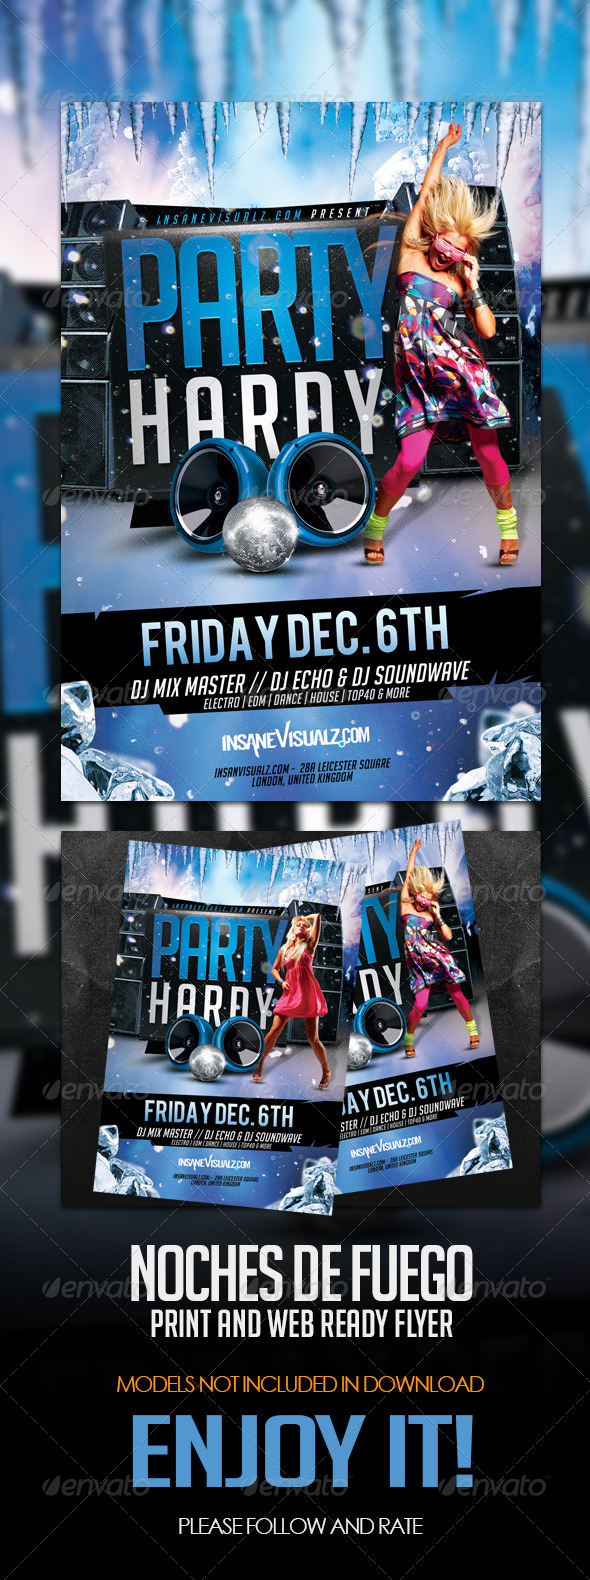 Party Hardy Flyer Template - Clubs & Parties Events